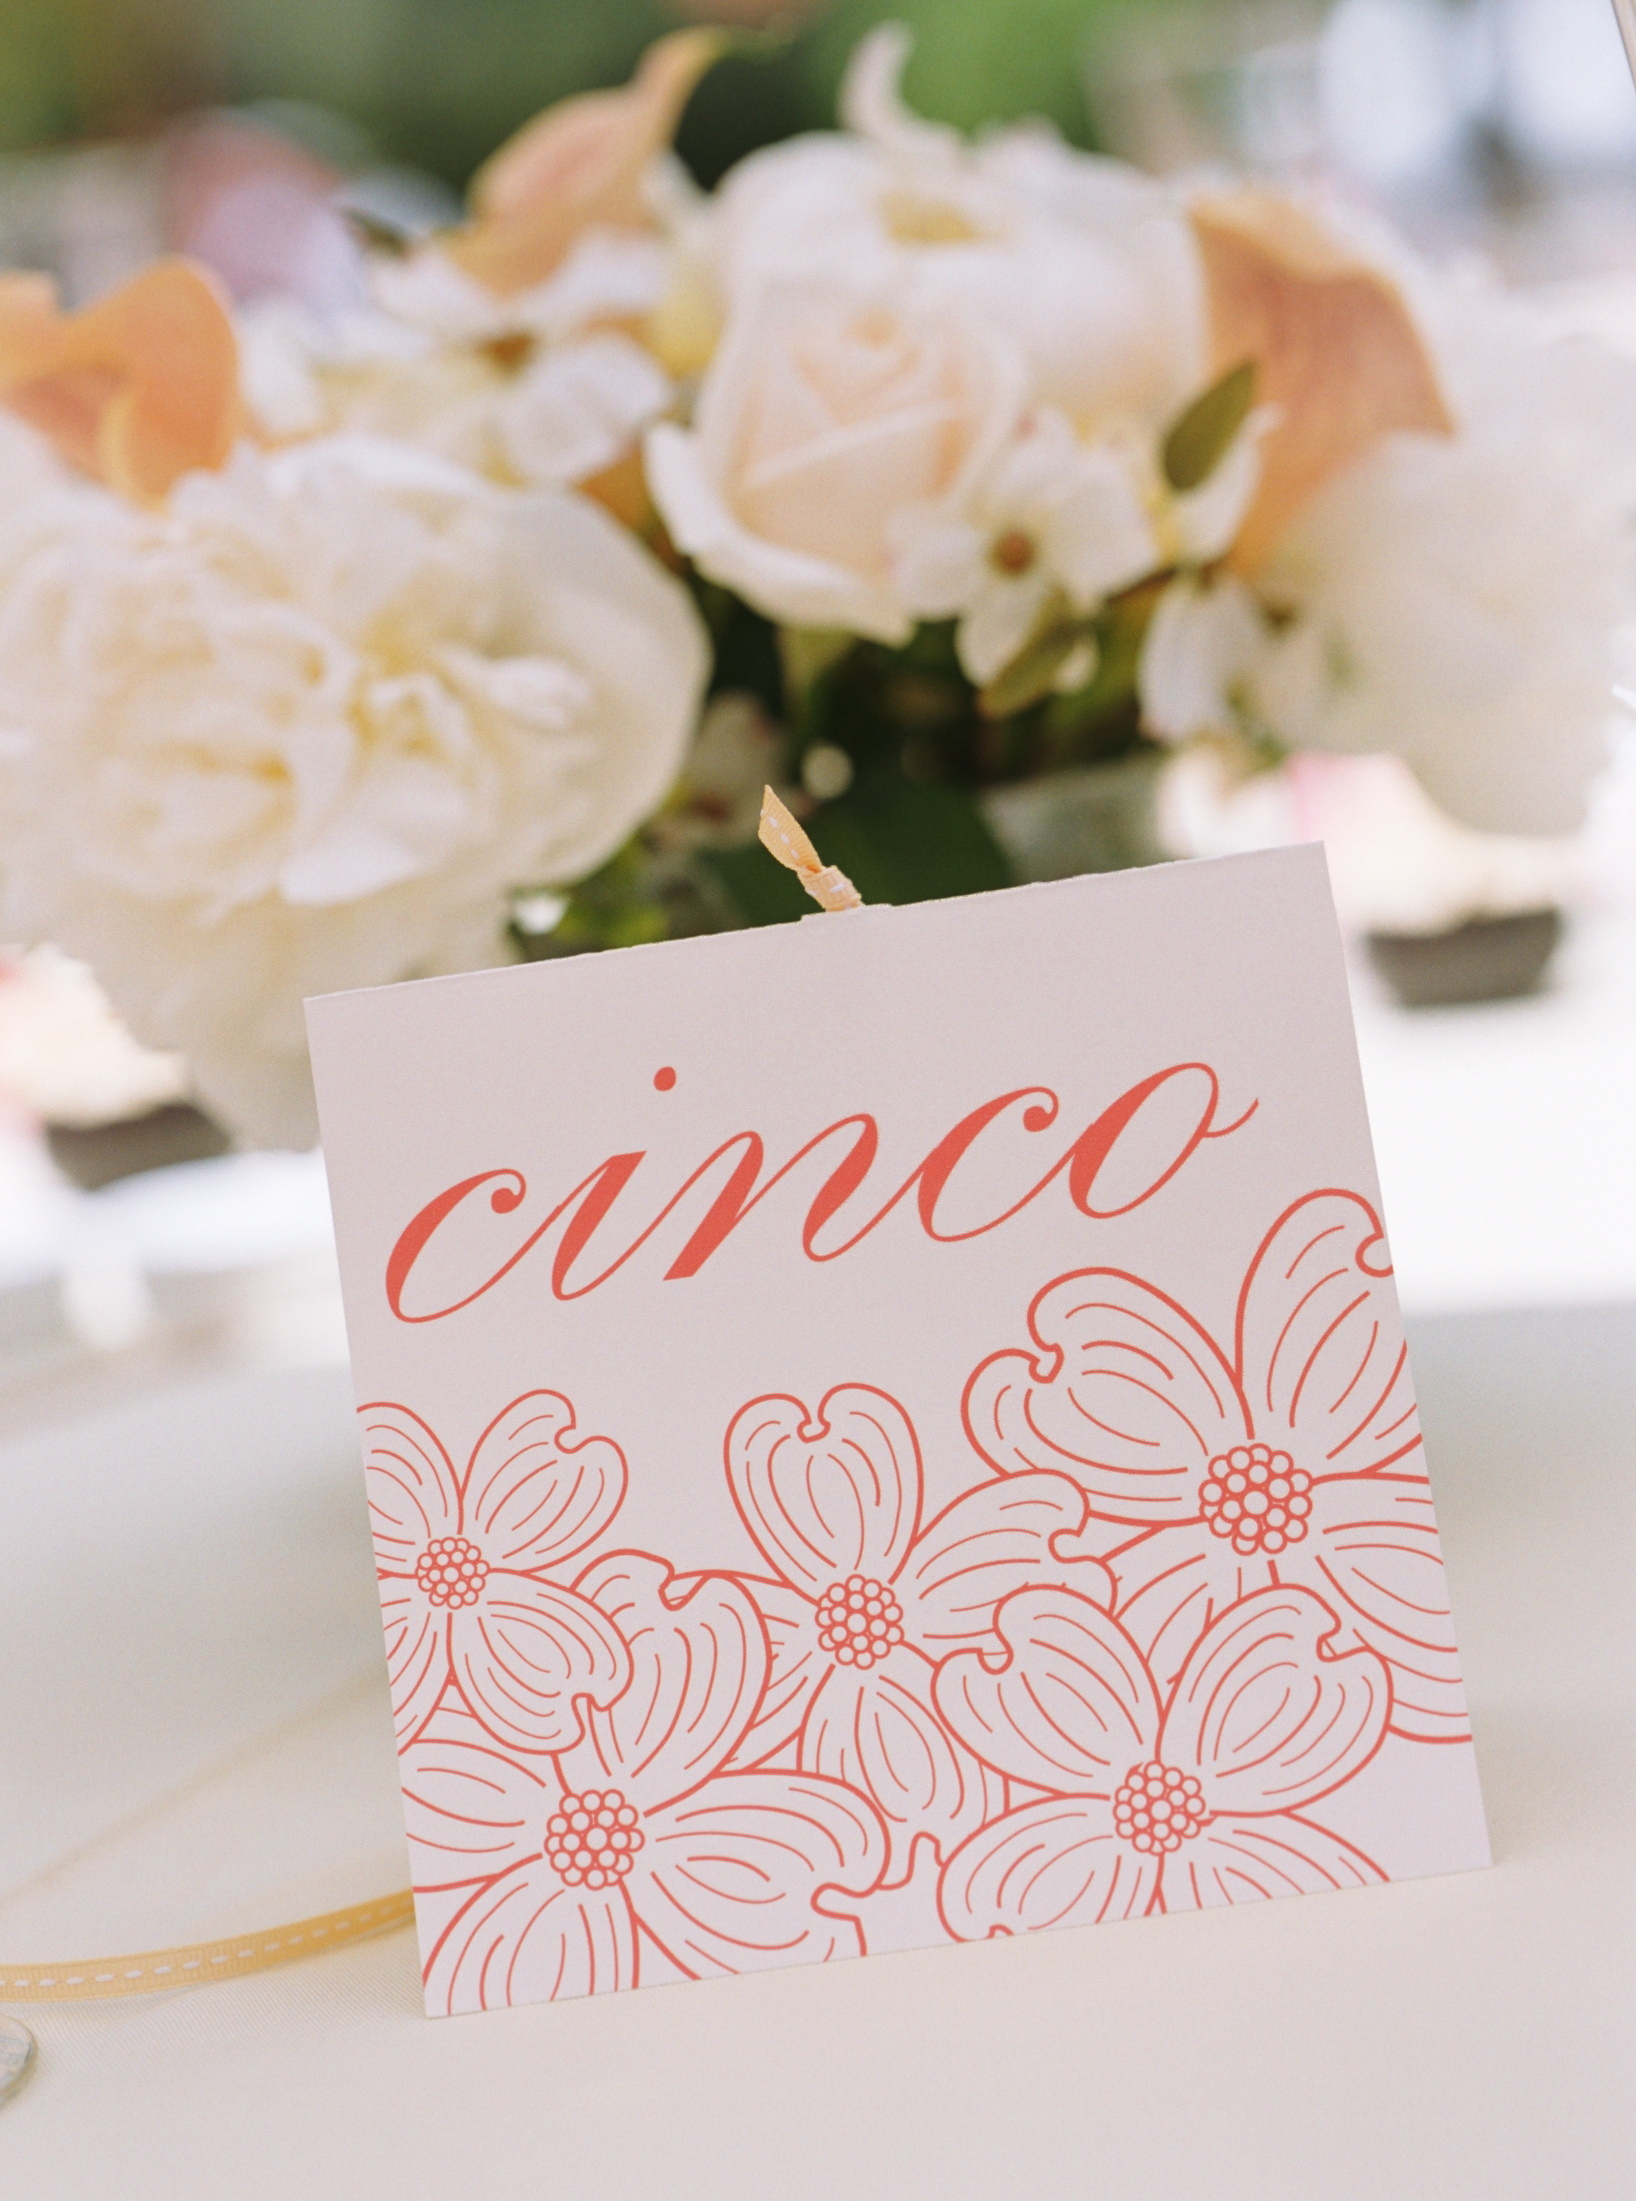 Reception, Flowers & Decor, Decor, Stationery, Destinations, pink, North America, Table Numbers, Wedding, Napa, Dogwood, Napa valley